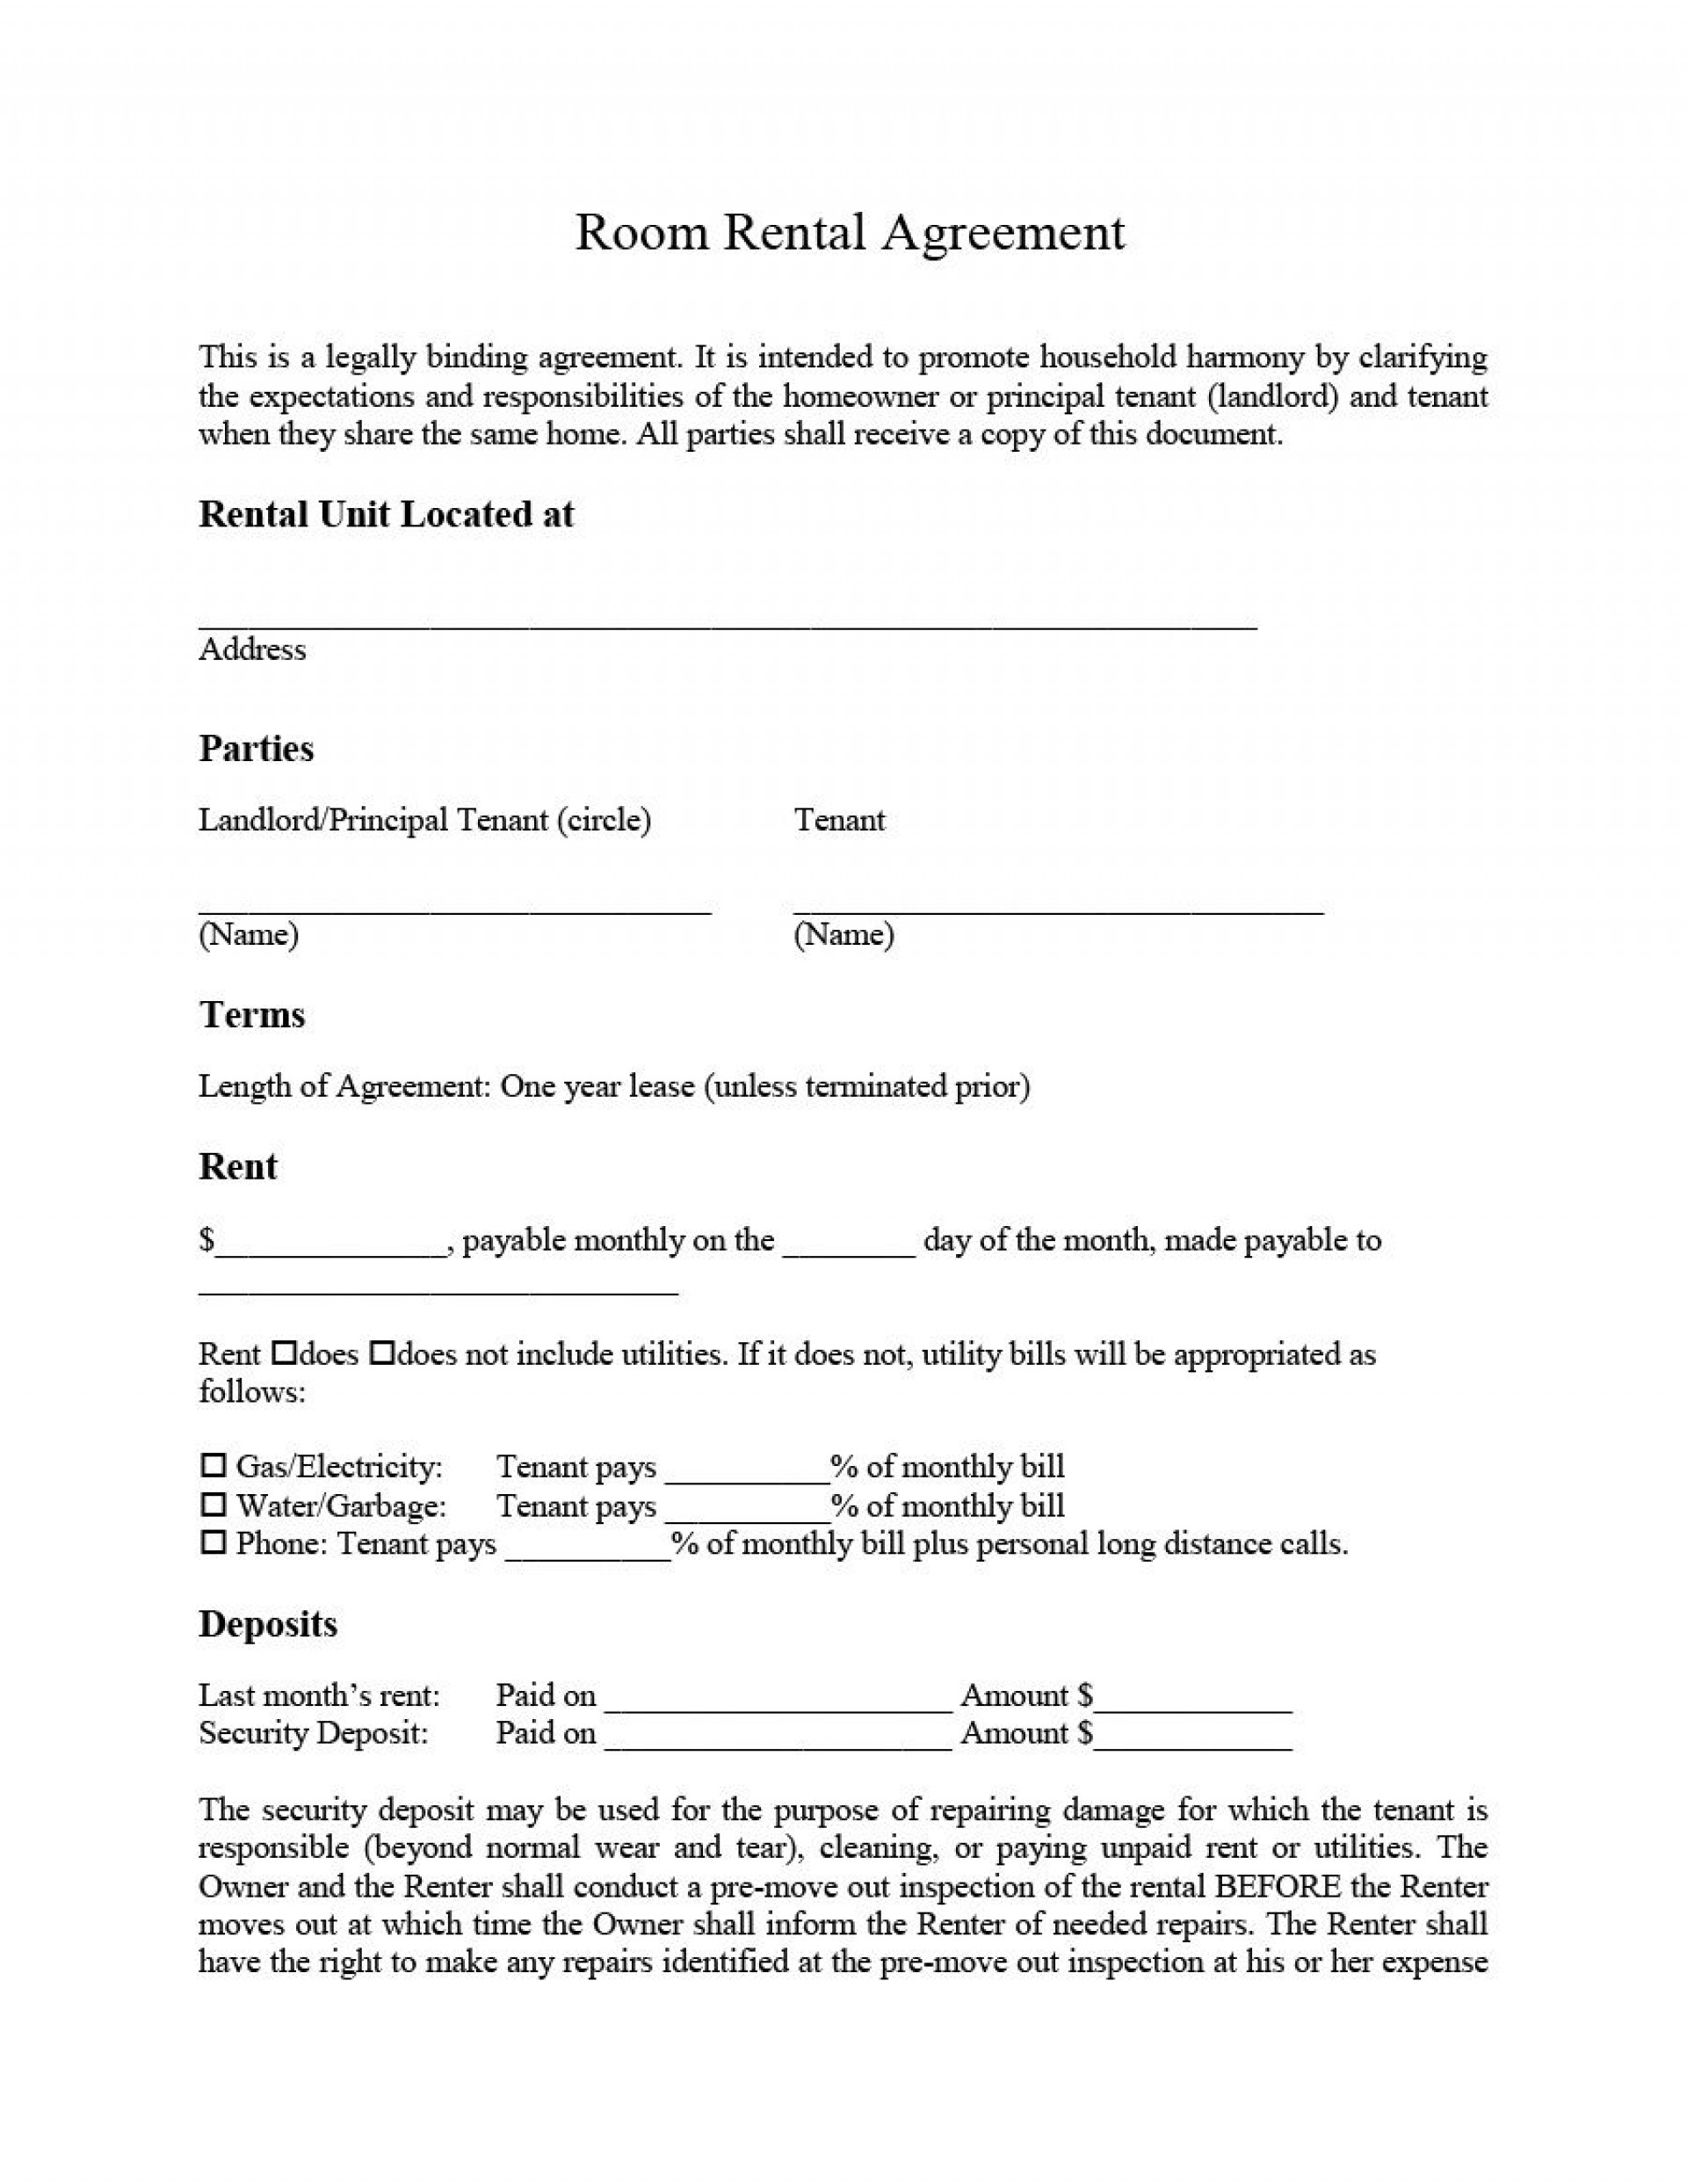 006 Striking Free Room Rental Agreement Template Word Highest Clarity  Doc Uk1920